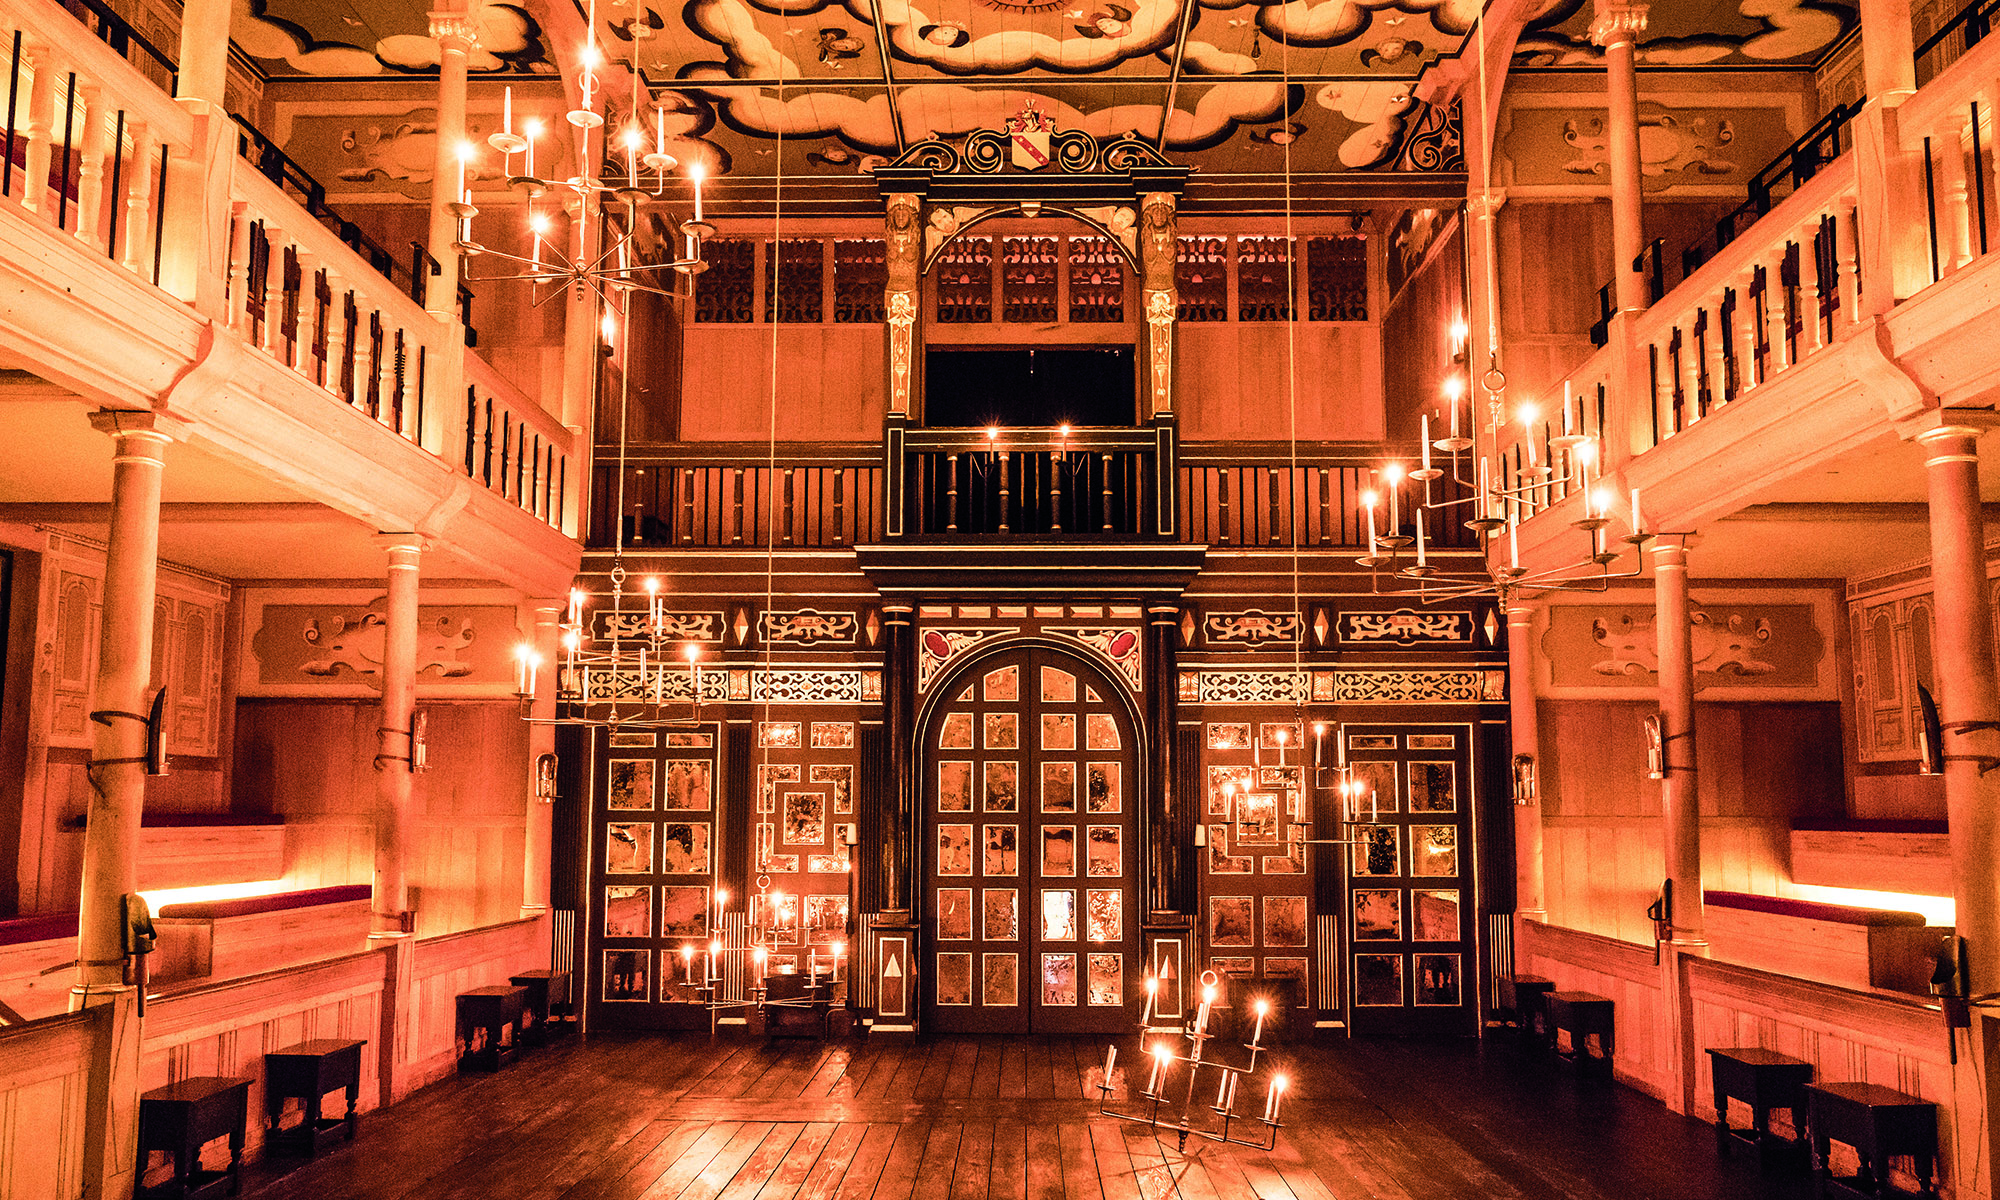 The candlelit interior of an indoor playhouse, with dark wooden panelling and a golden glow.